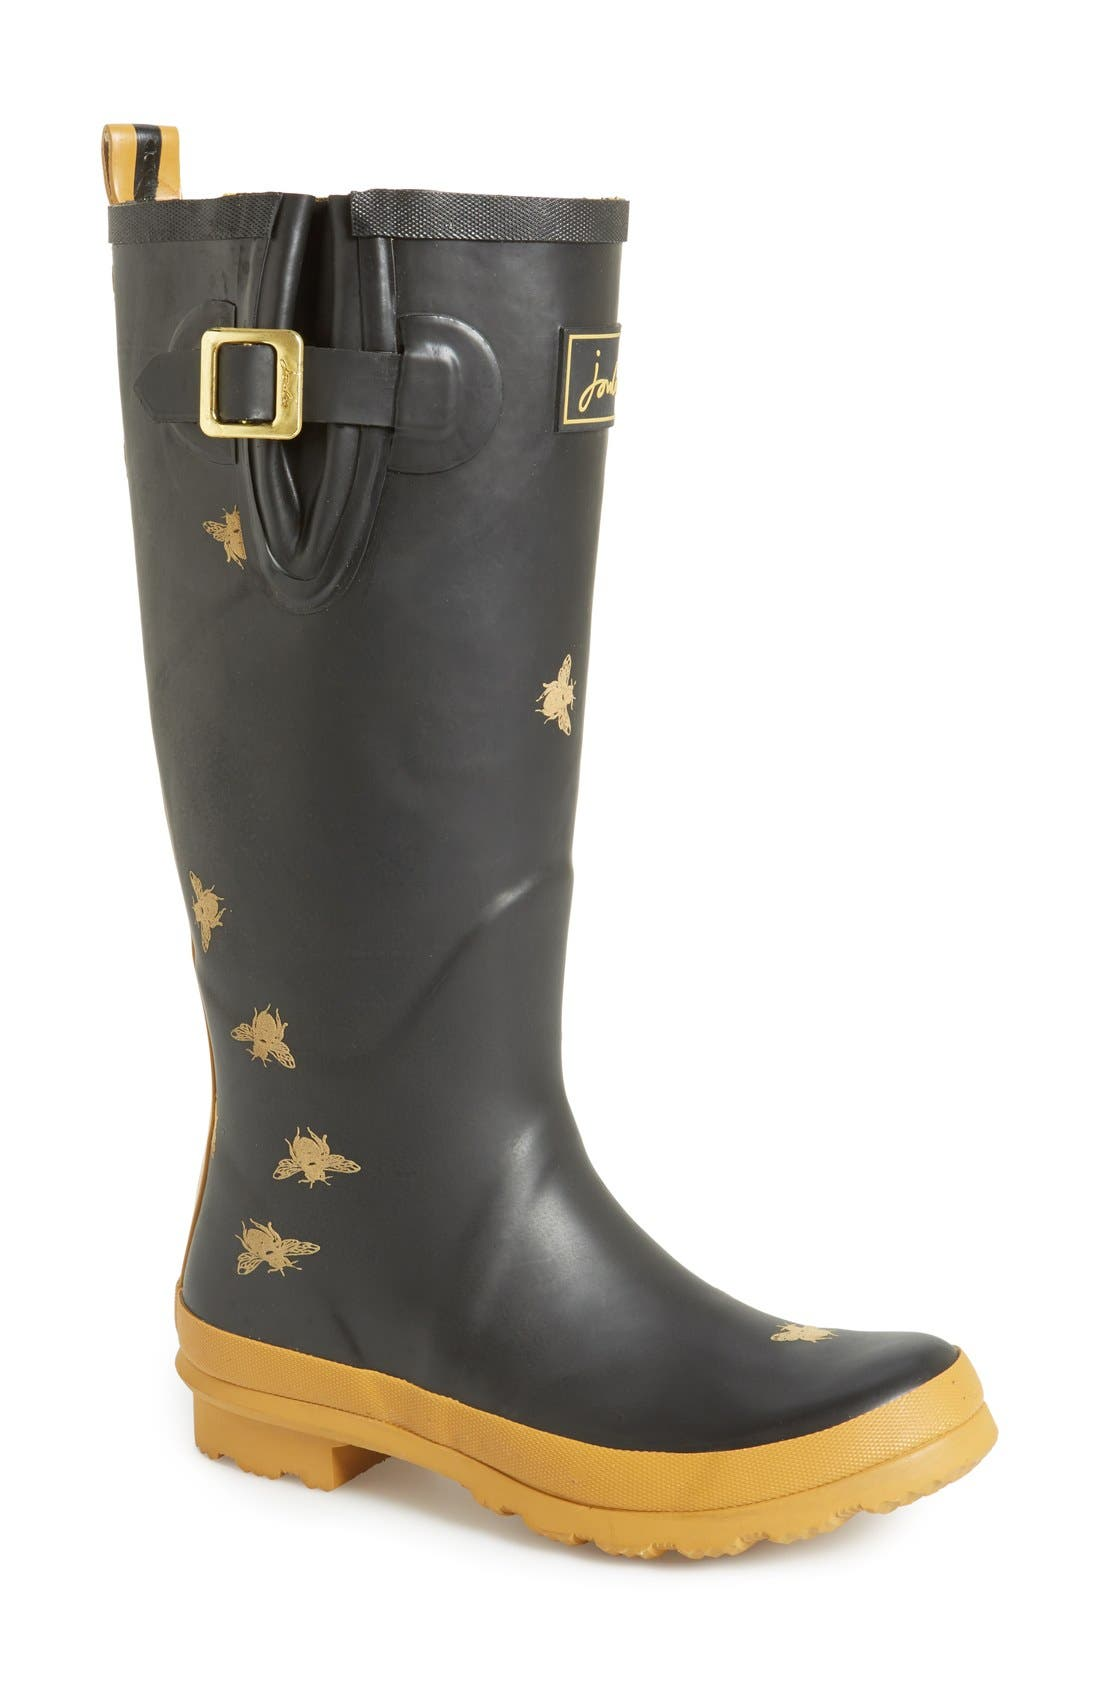 Alternate Image 1 Selected - Joules 'Wellyprint' Rain Boot (Women)